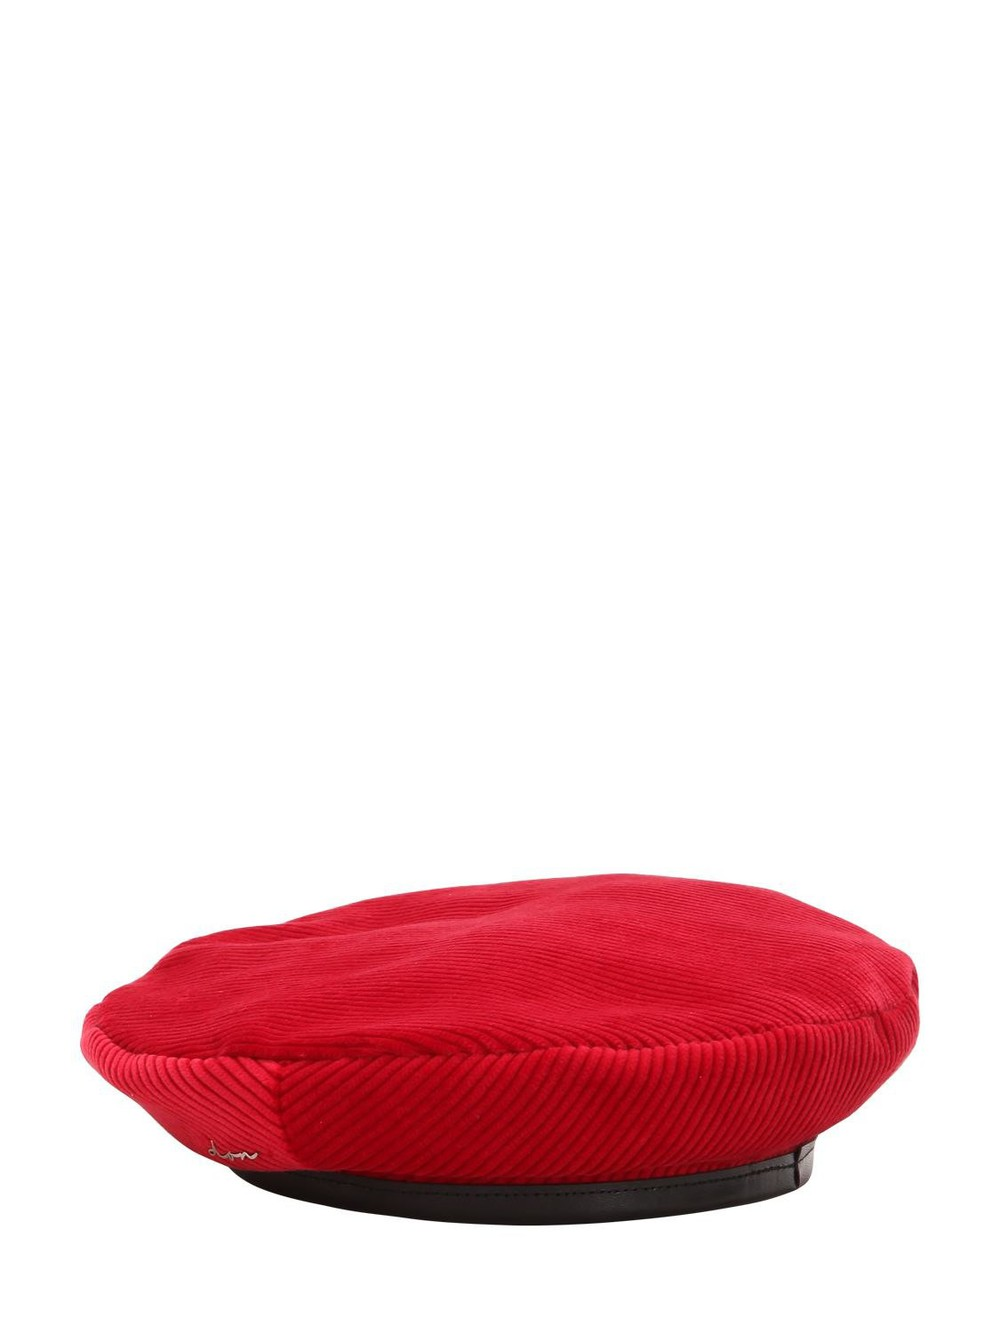 DON Corduroy Beret in red